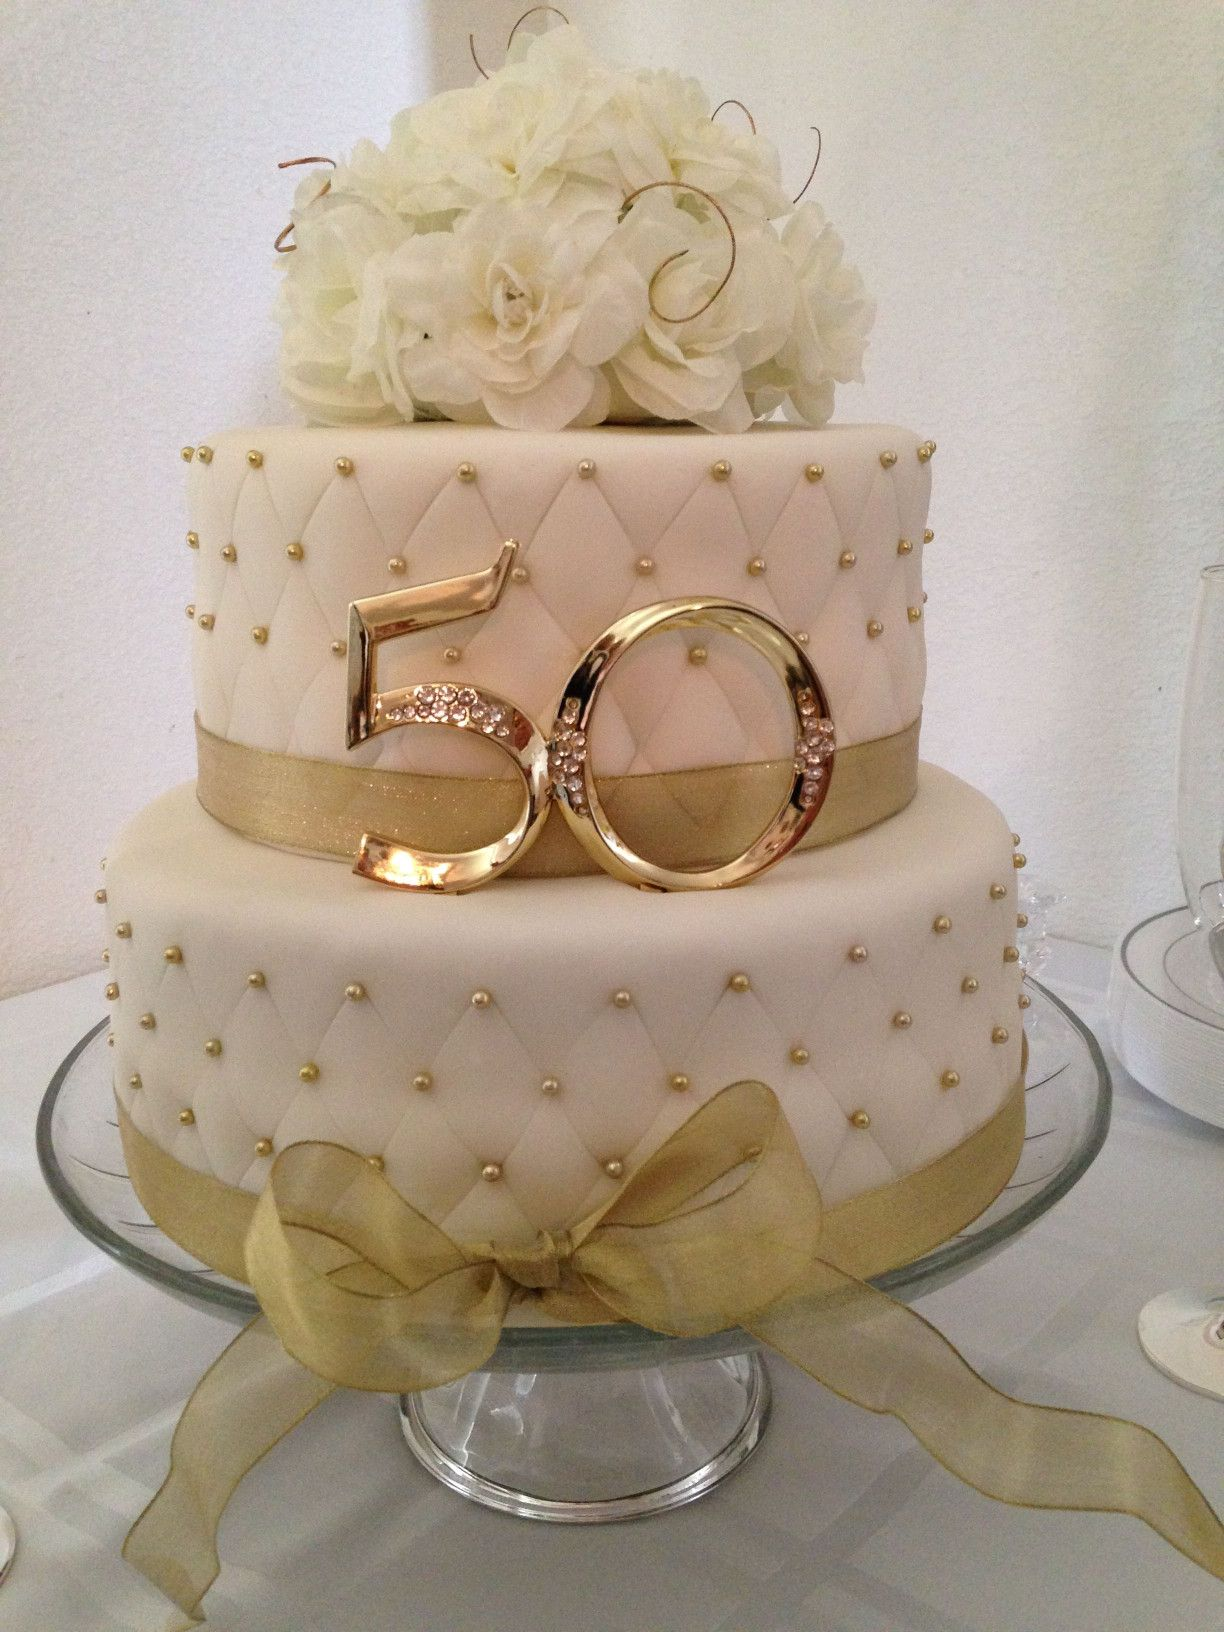 Top 20 50th Birthday Cake 50th anniversary cakes, 50th